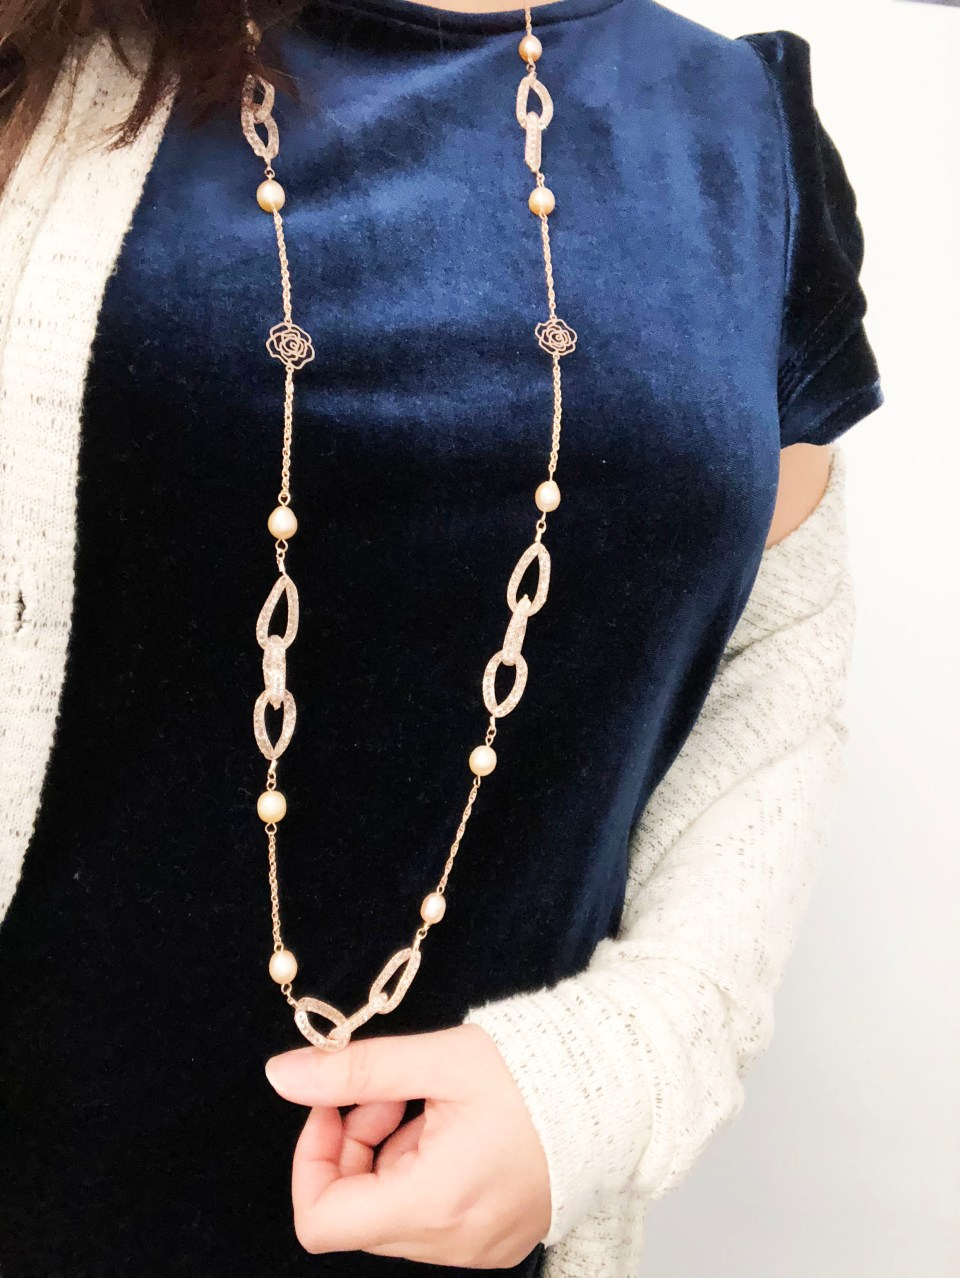 Embellished Necklace + Blue Velvet Top 3